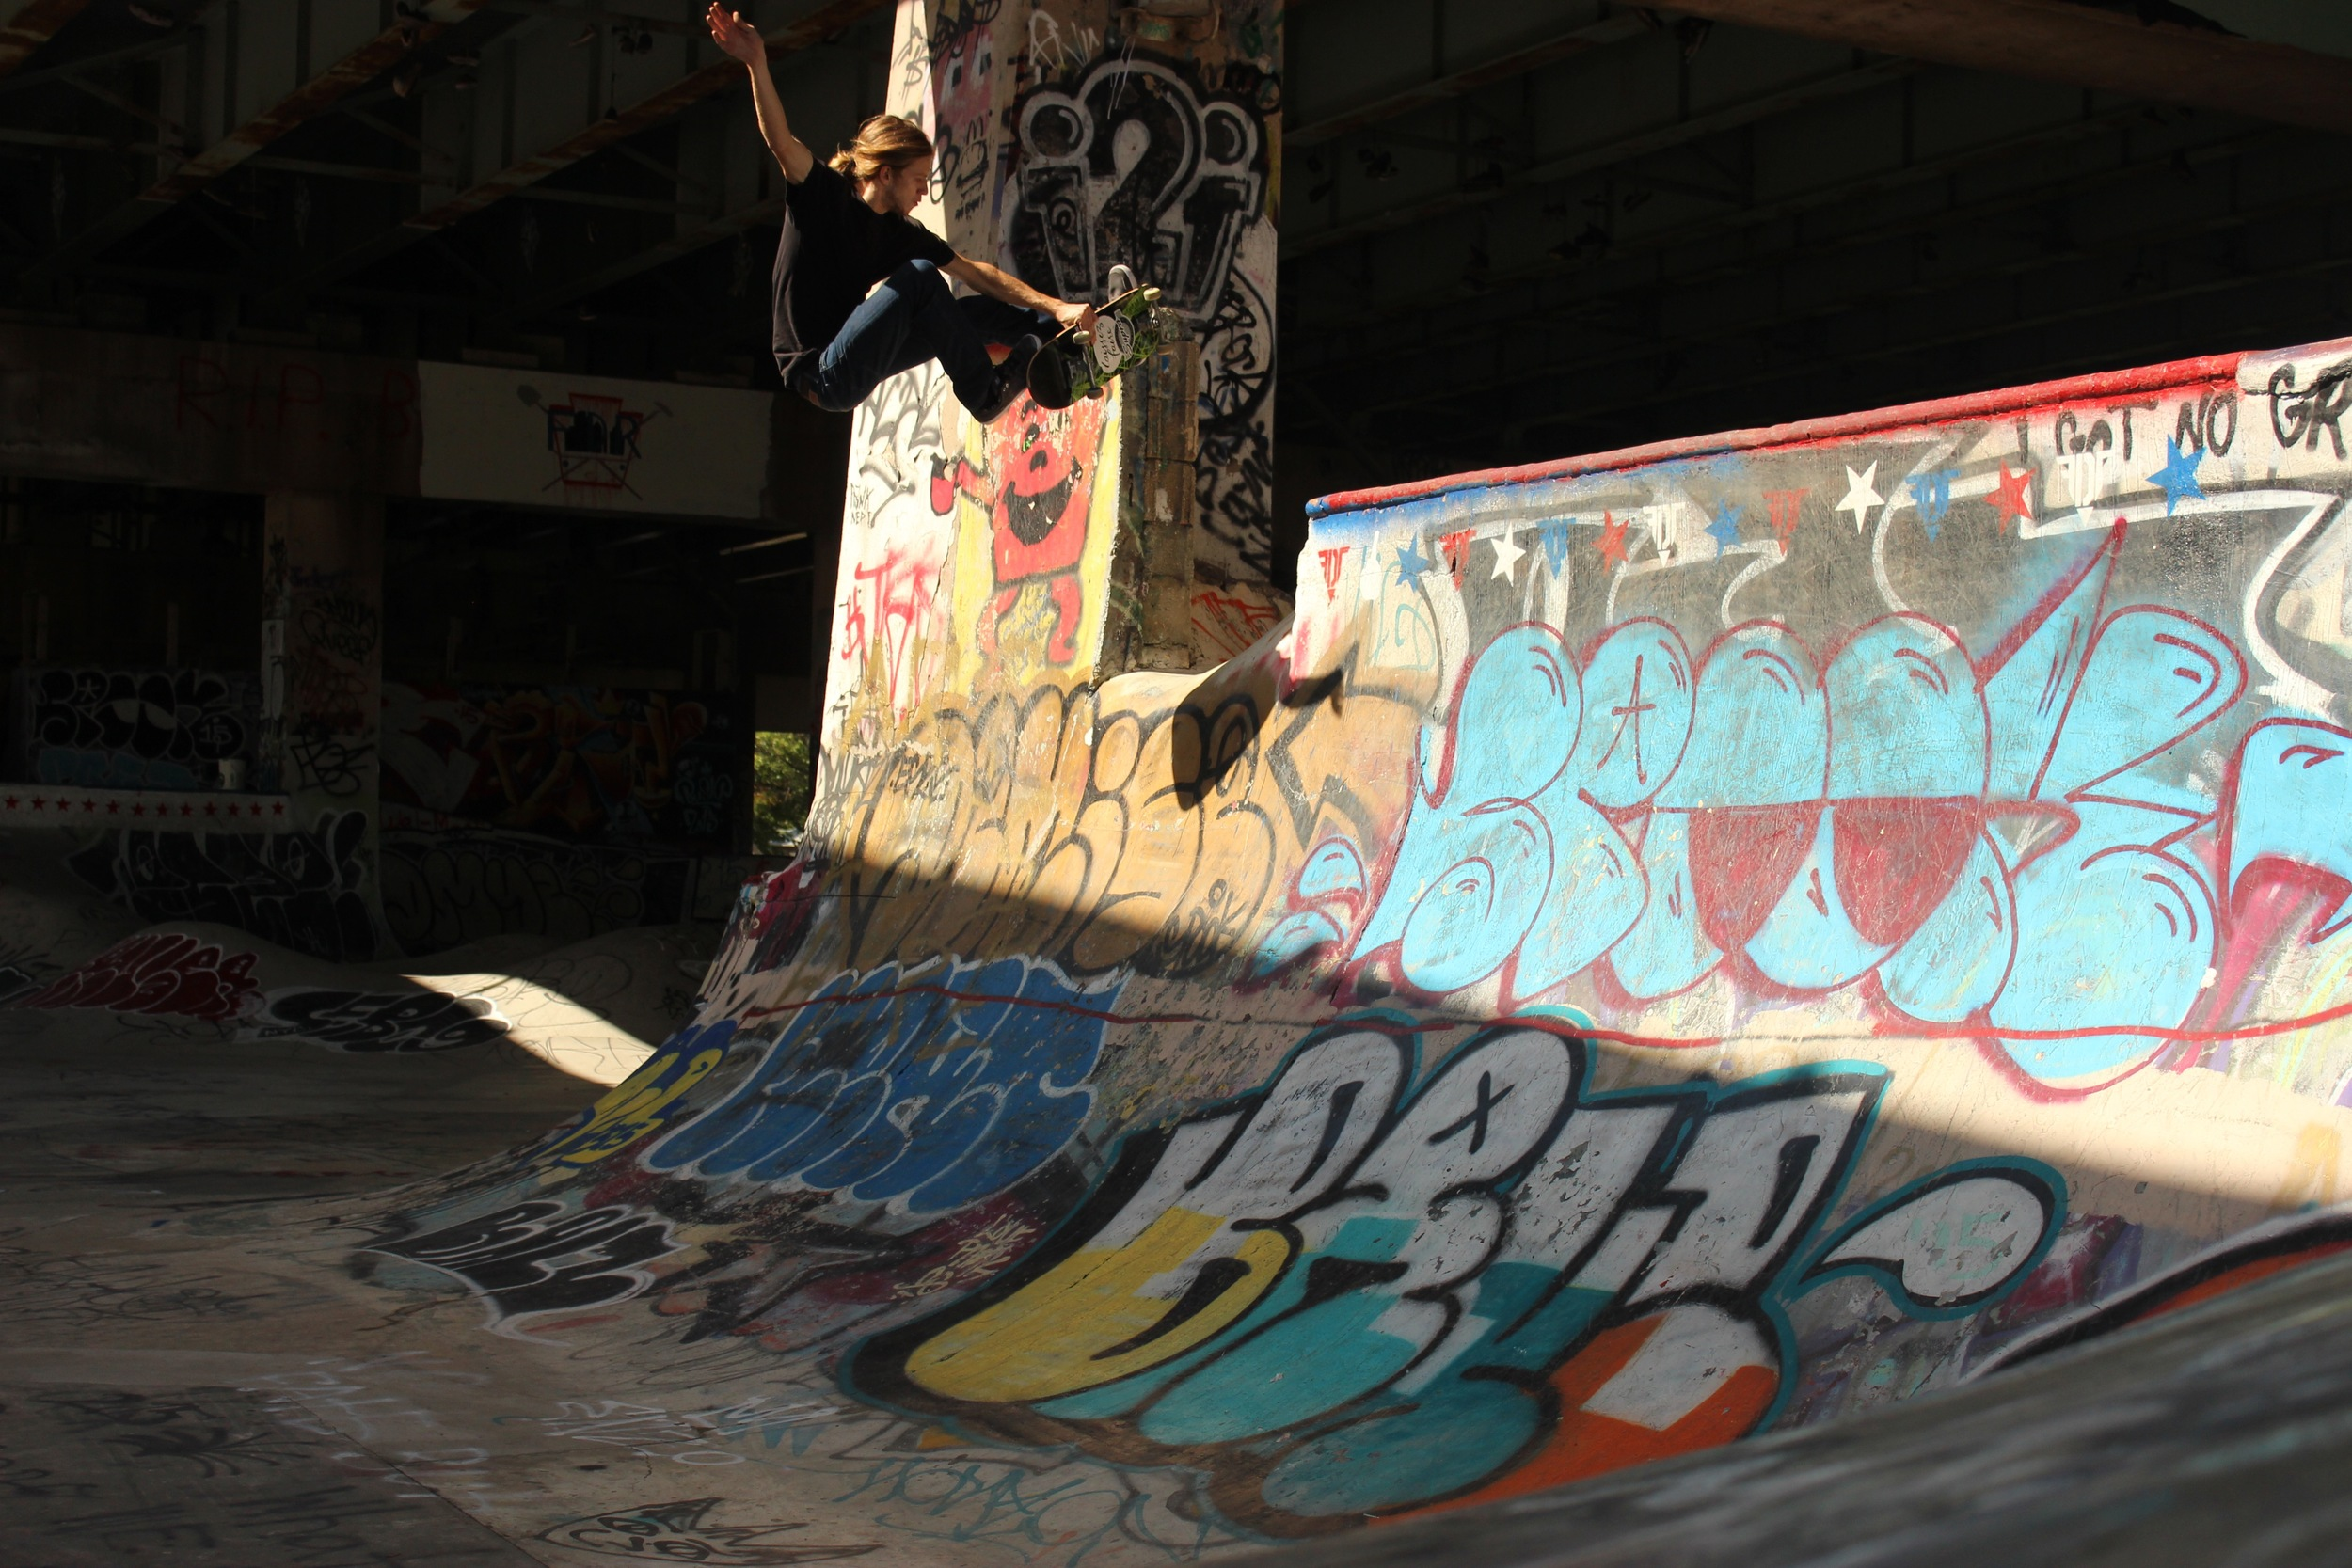 Nick - Frontside at FDR